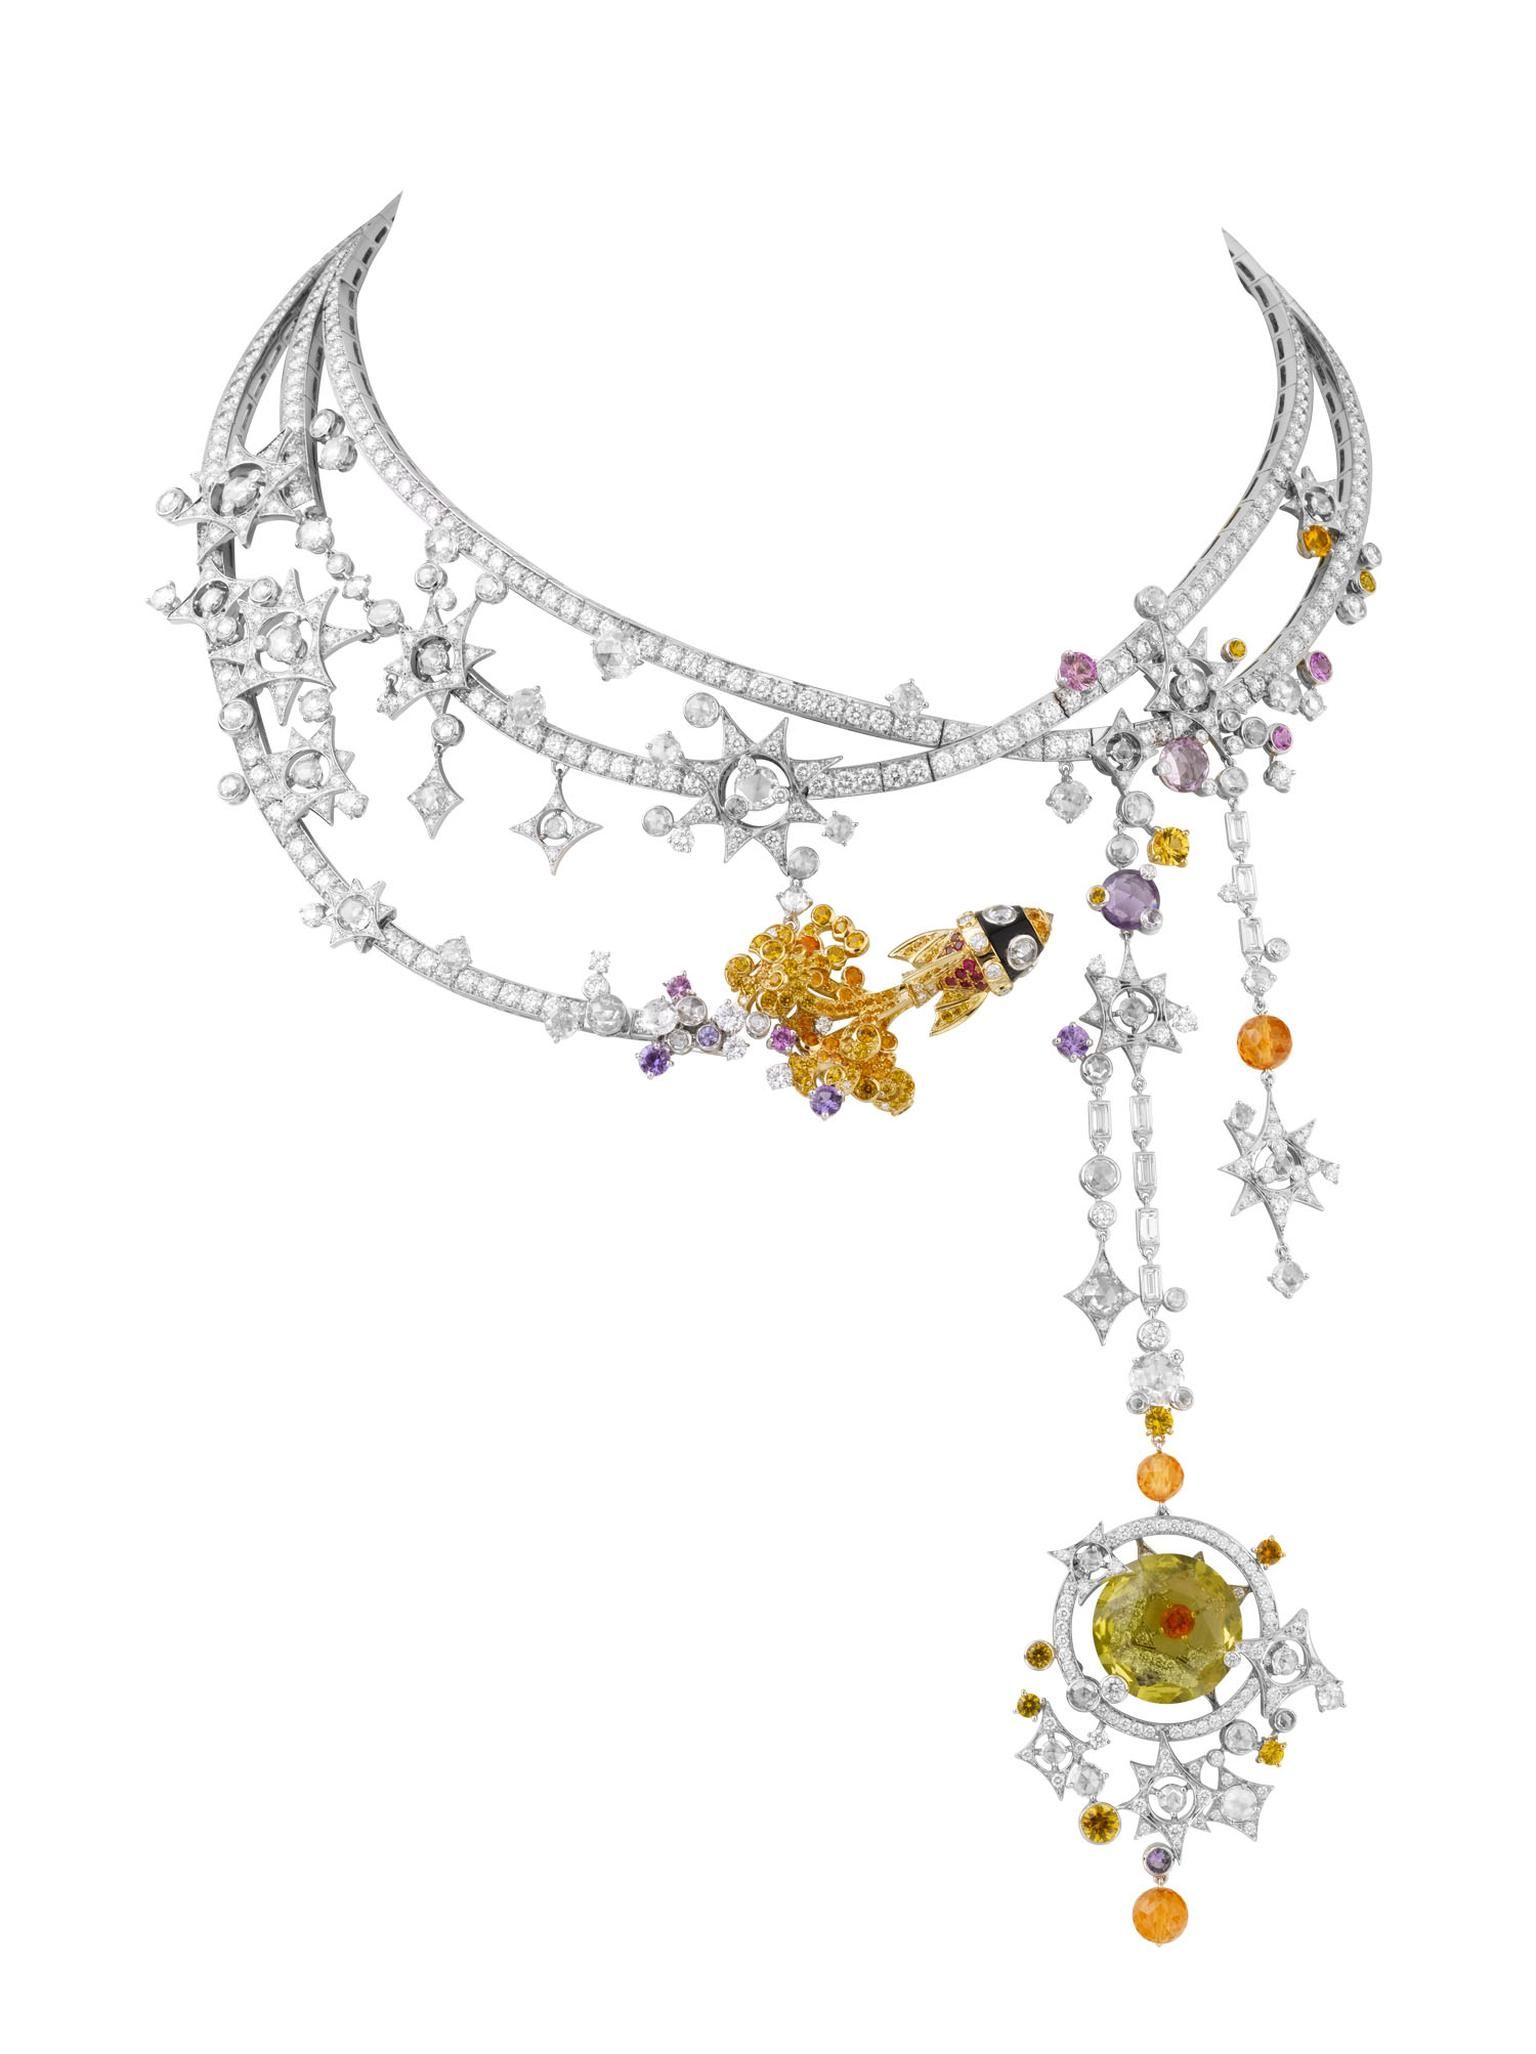 Tampa necklace by Van Cleef & Arpels